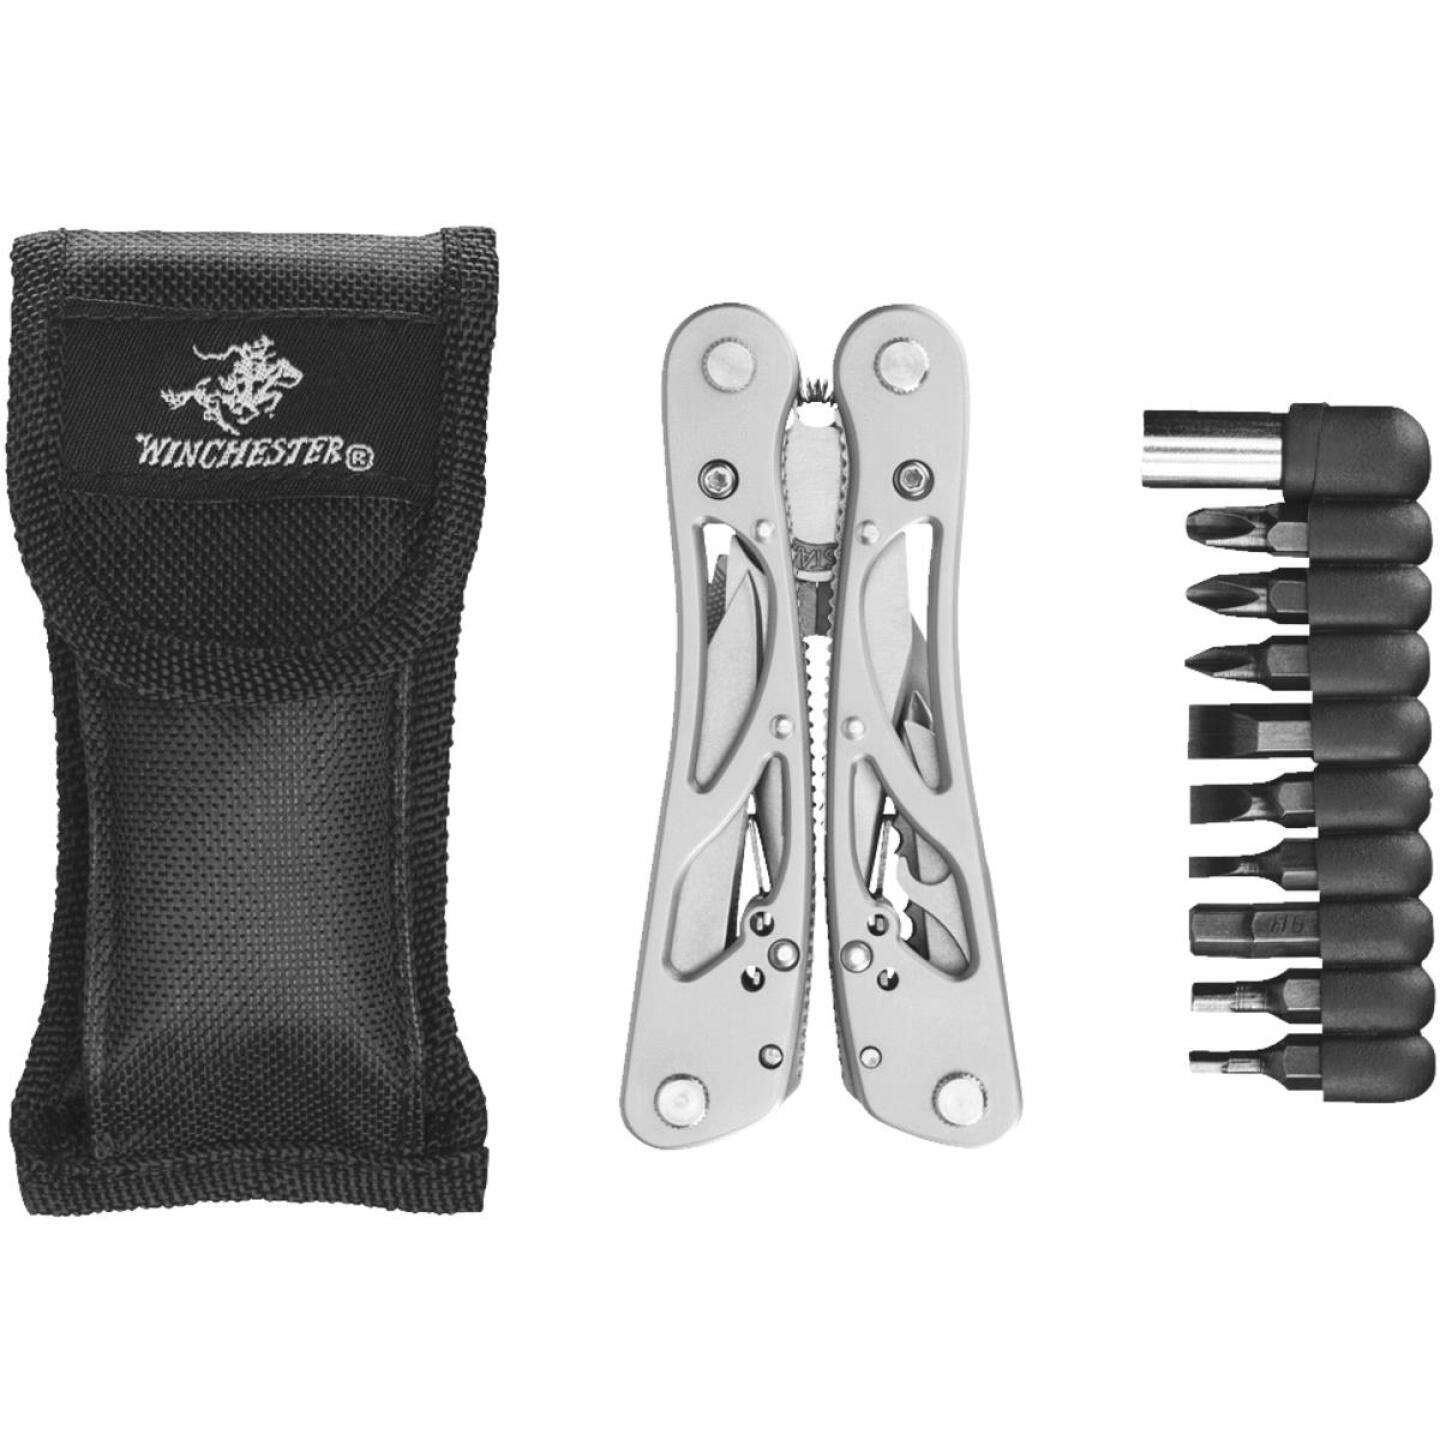 Winchester Winframe 13-Tool Aluminum Multi-Tool Image 2